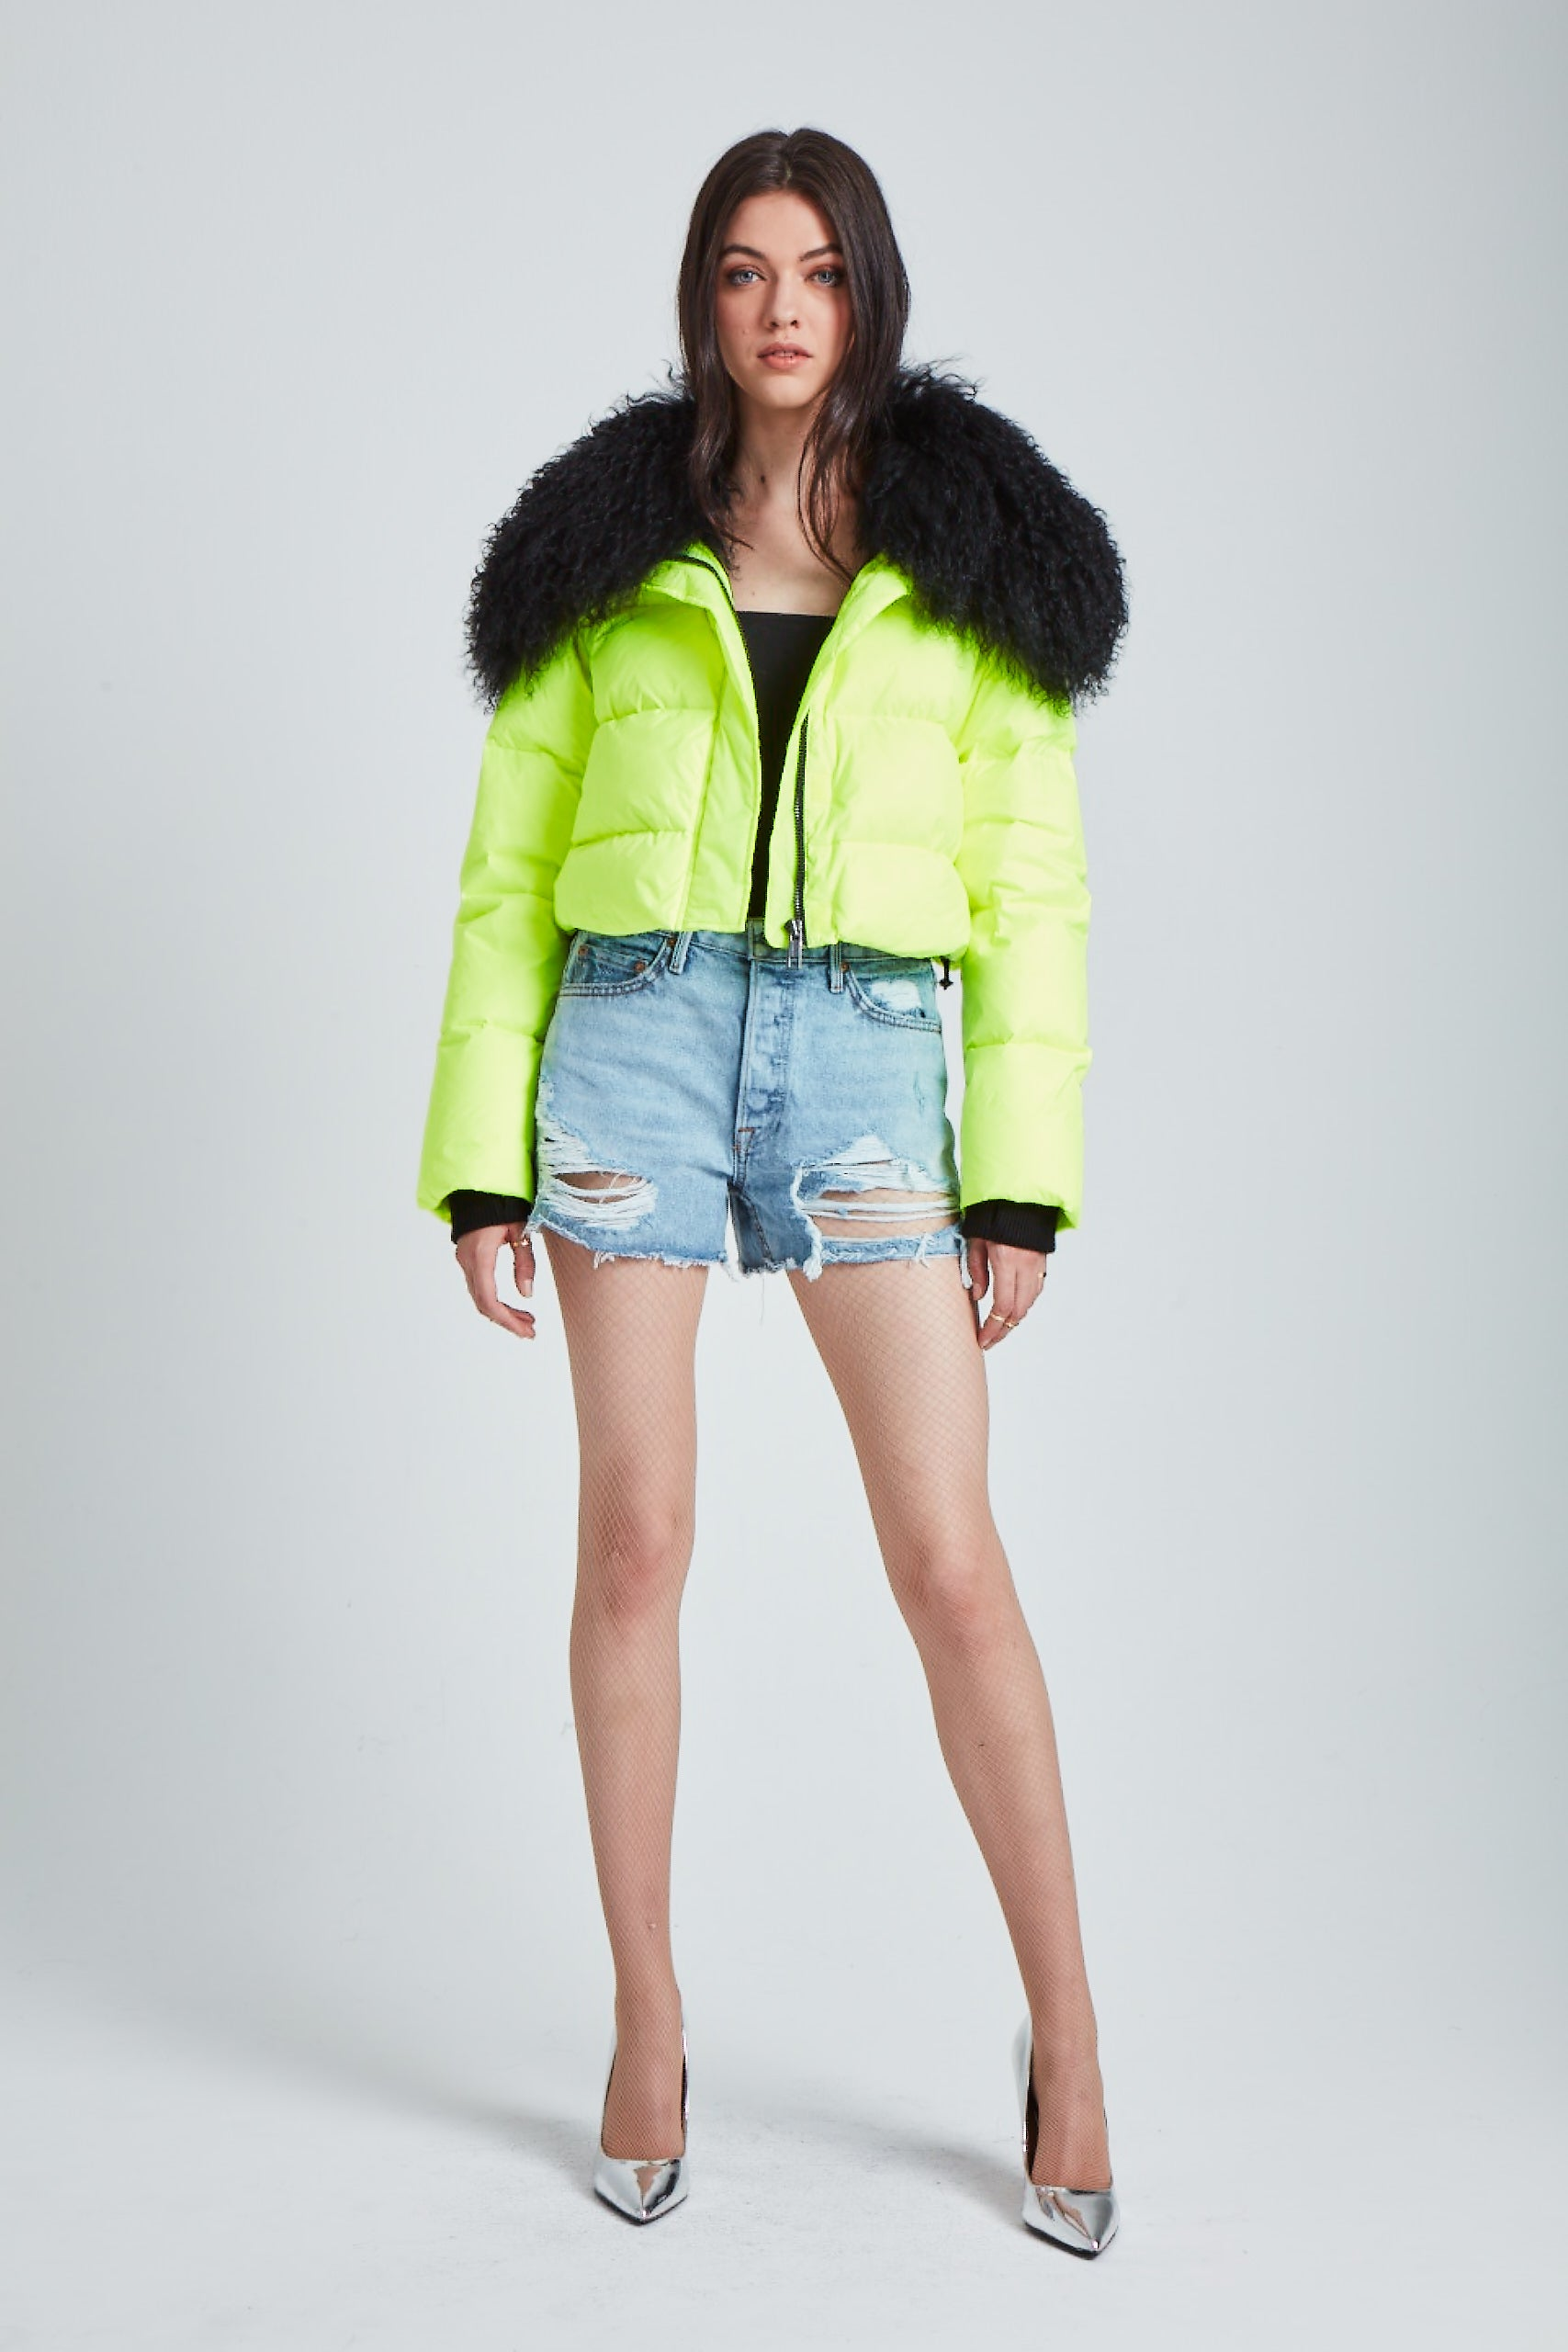 The Outta this World Jacket - Neon Yellow